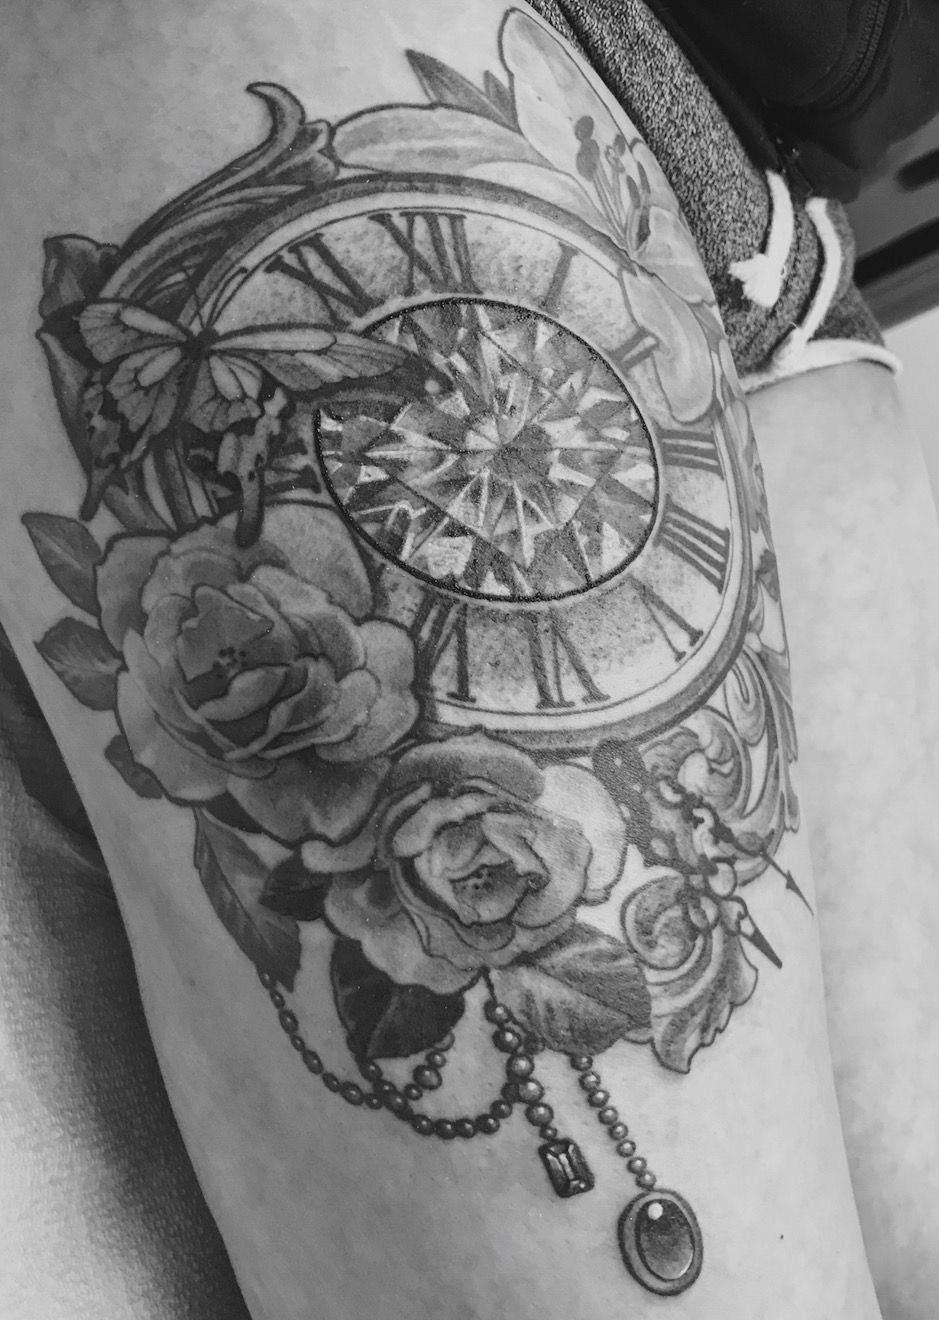 Still sitting in the tattoo parlour waiting to get wrapped up. That's why it looks so rough & raw, especially around the numbers. She's complete! #tattoo #tattoosforwomen #clocktattoo #butterflytattoo #roses #lily #fresh #flowertattoo #legtattoos